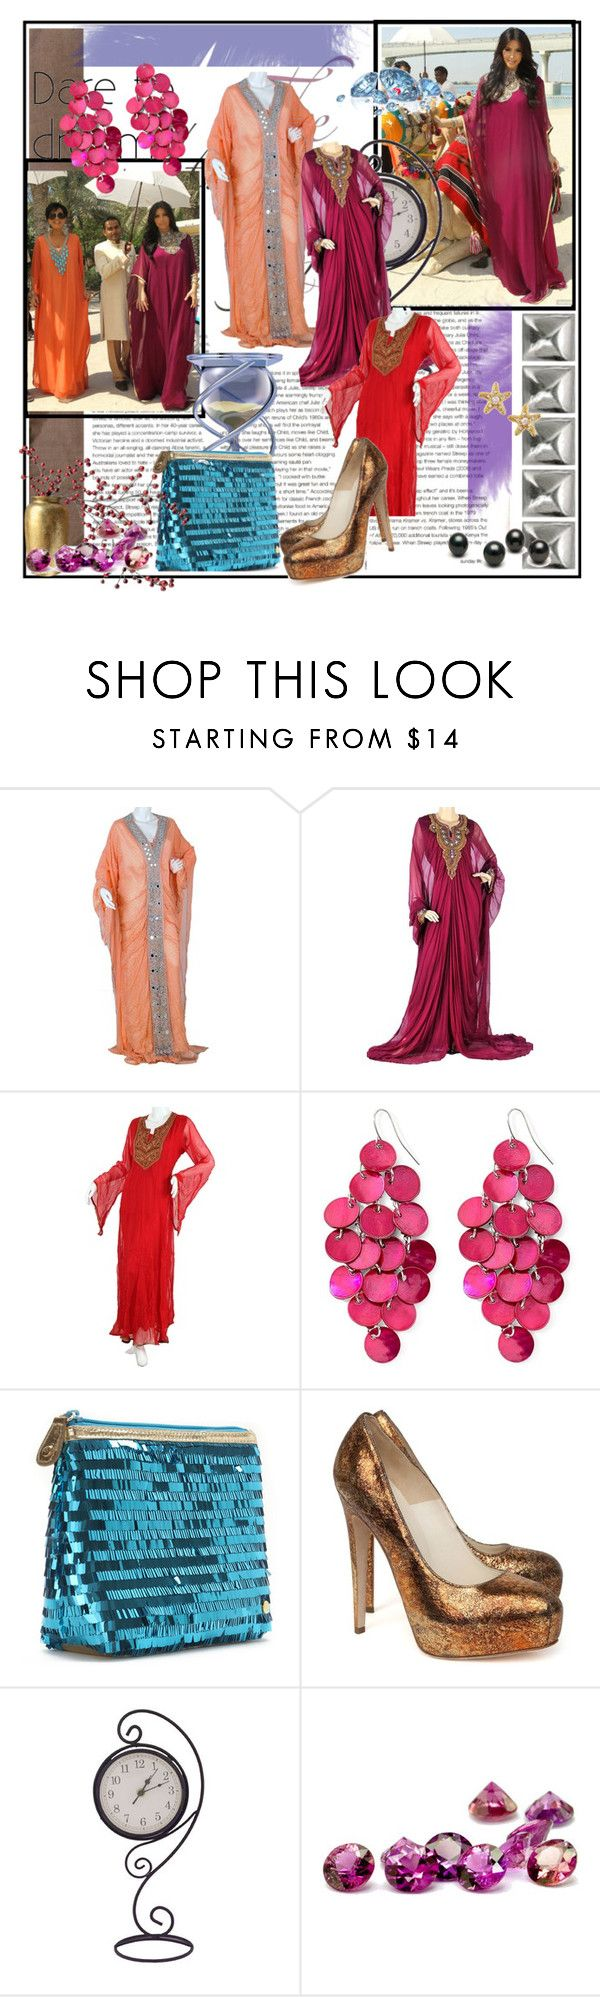 """Kardashian Kaftan"" by aljalabiya ❤ liked on Polyvore featuring Mixit, Stephanie Johnson, Brian Atwood, Juicy Couture, jalabiya, kaftans, kardashian and kaftan designs"